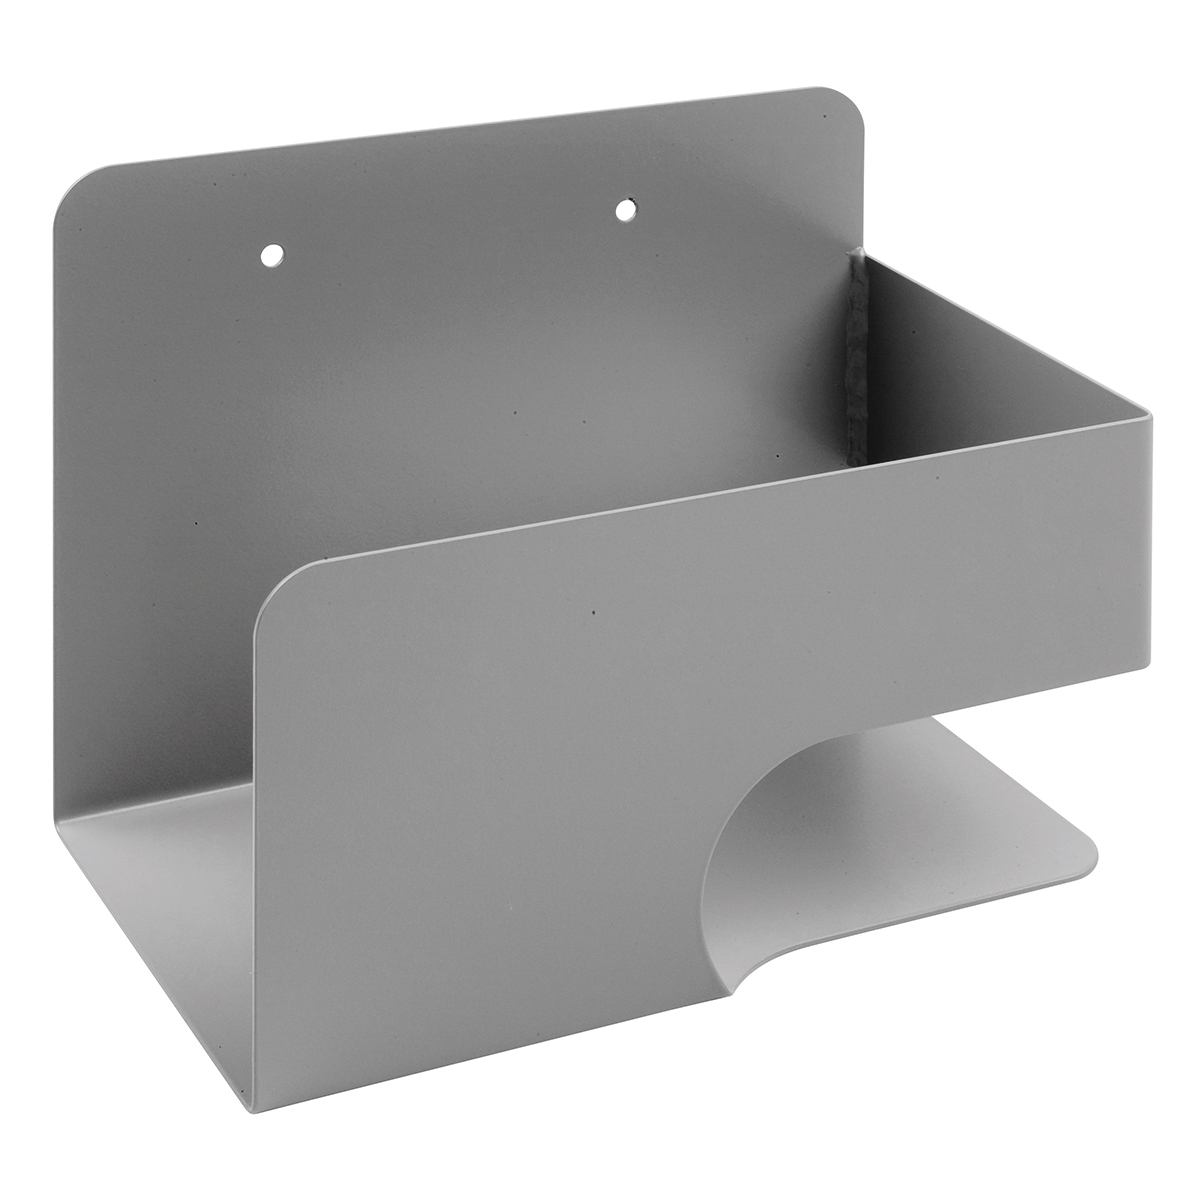 Wall Bracket for Defibrillator